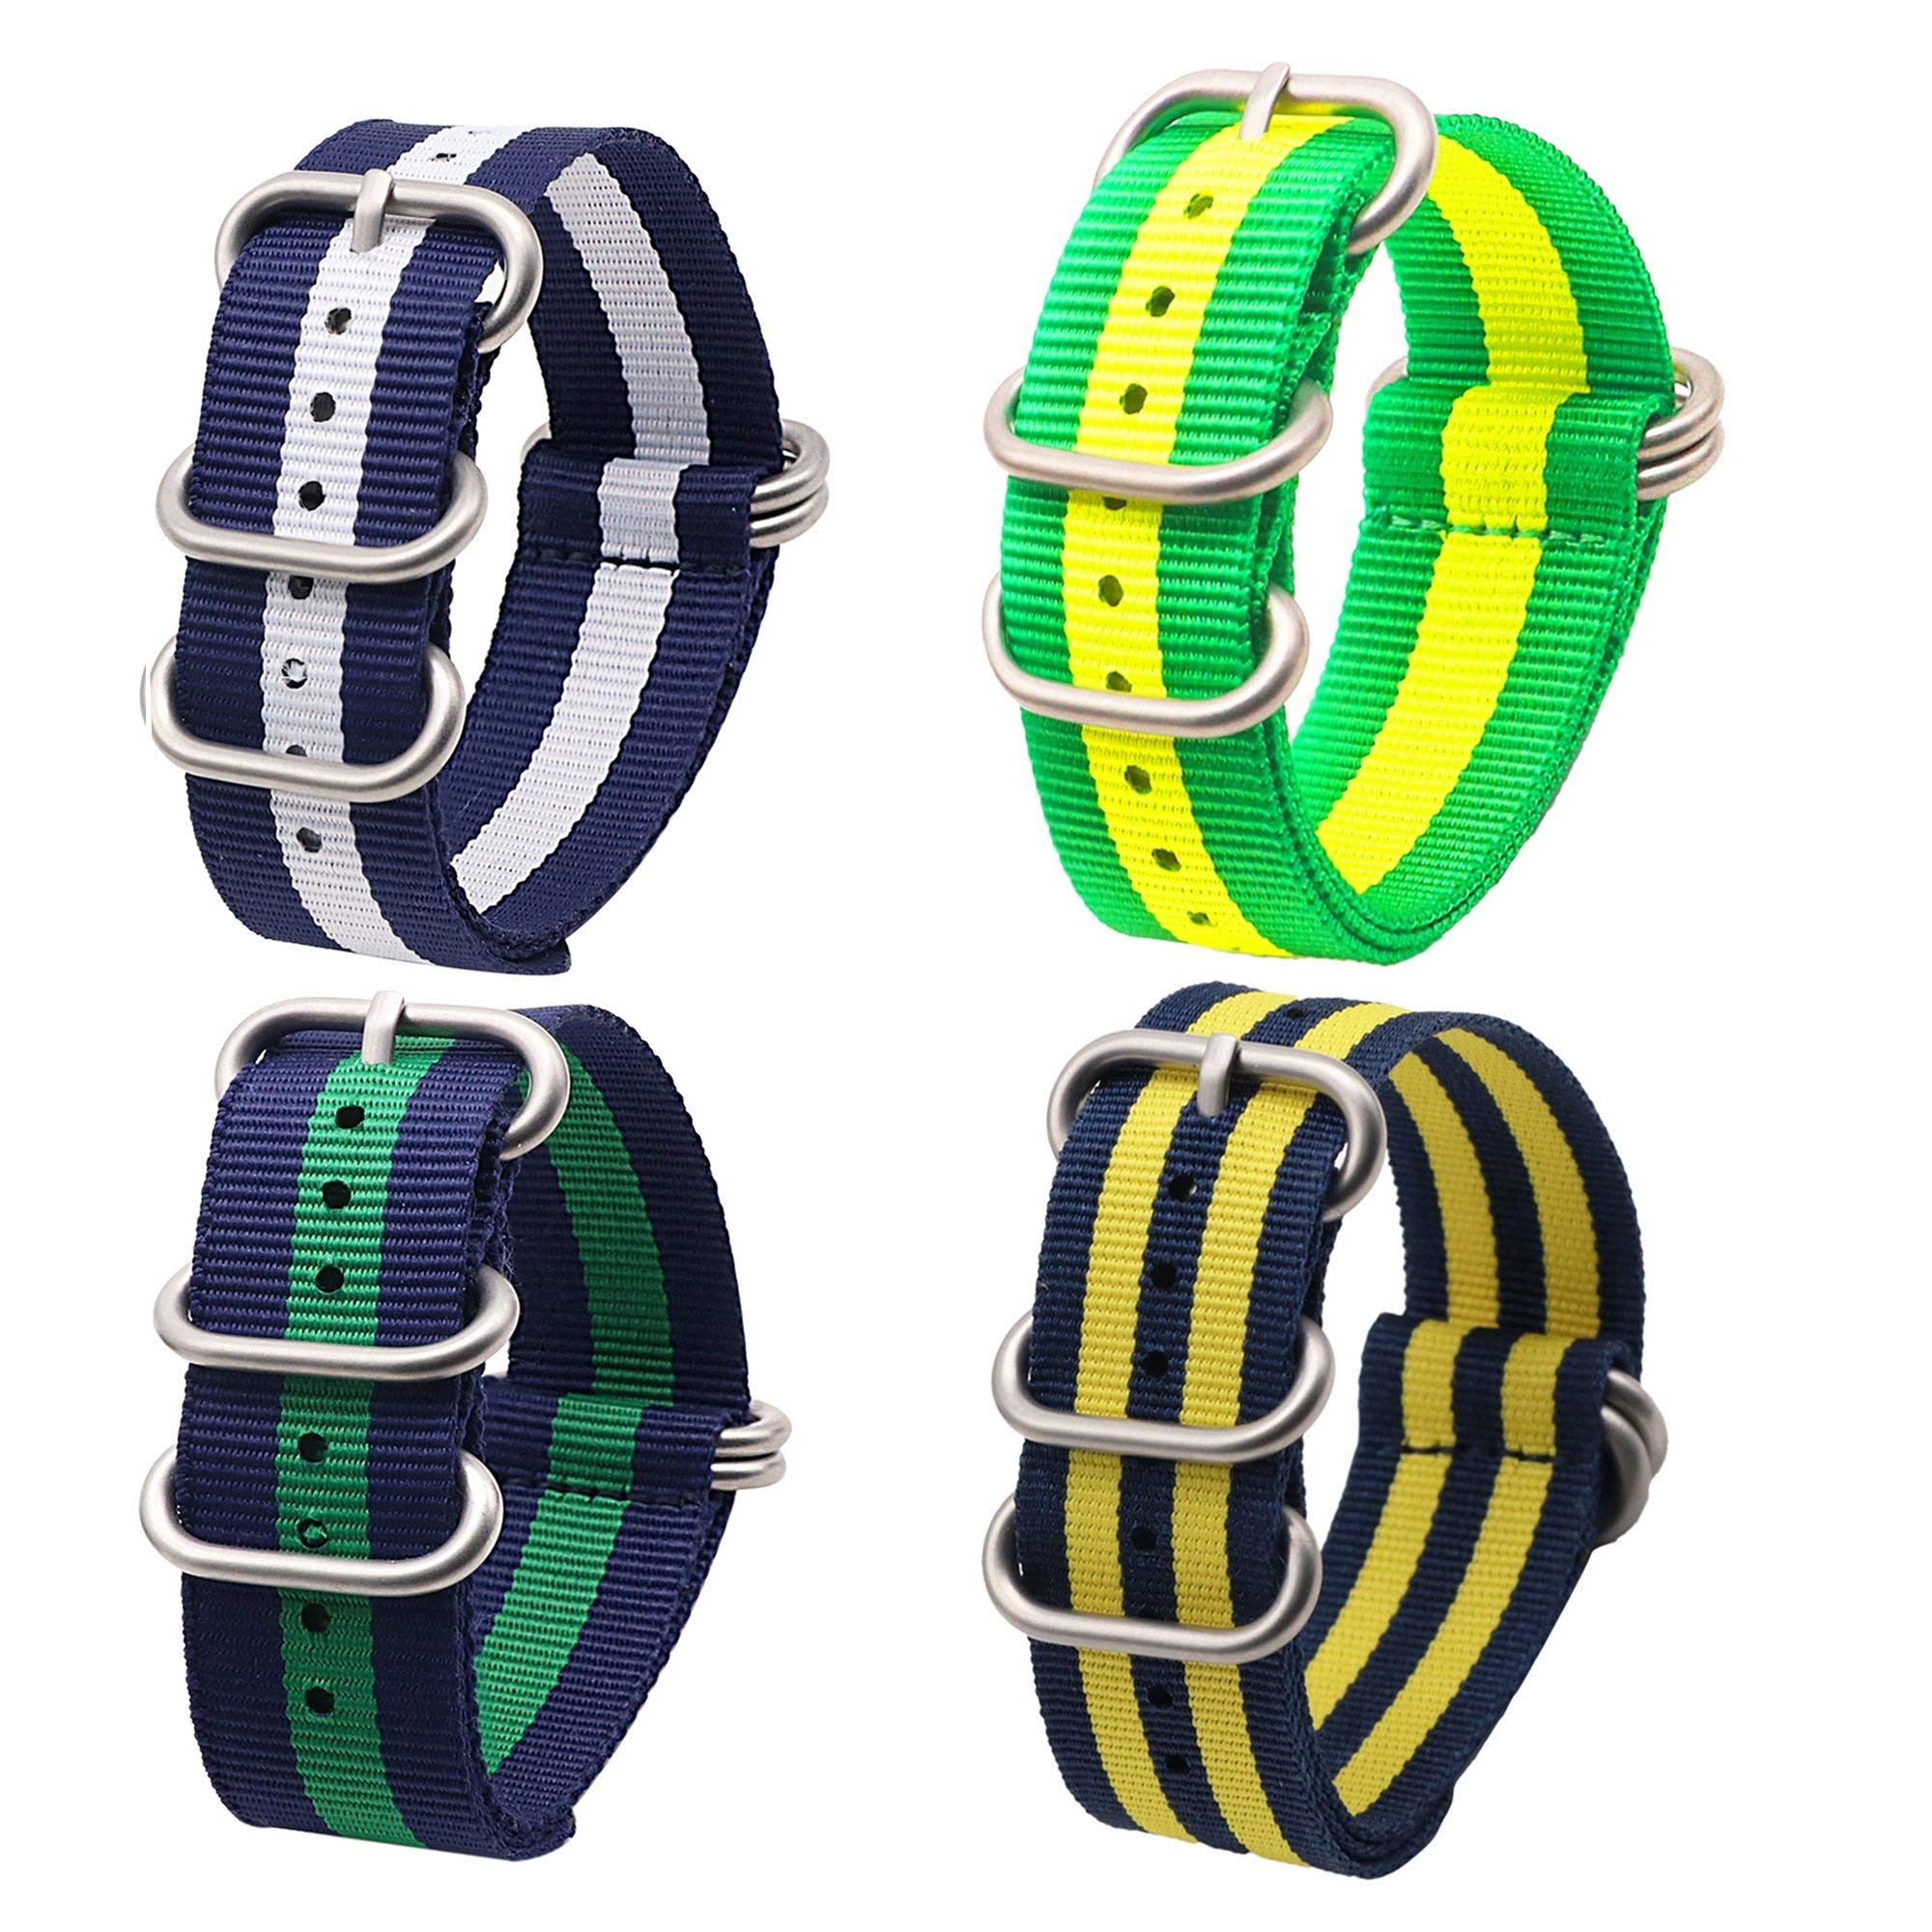 22mm Ballistic Nylon Watch Band with NATO Design 4 Pack by autulet (Image #1)